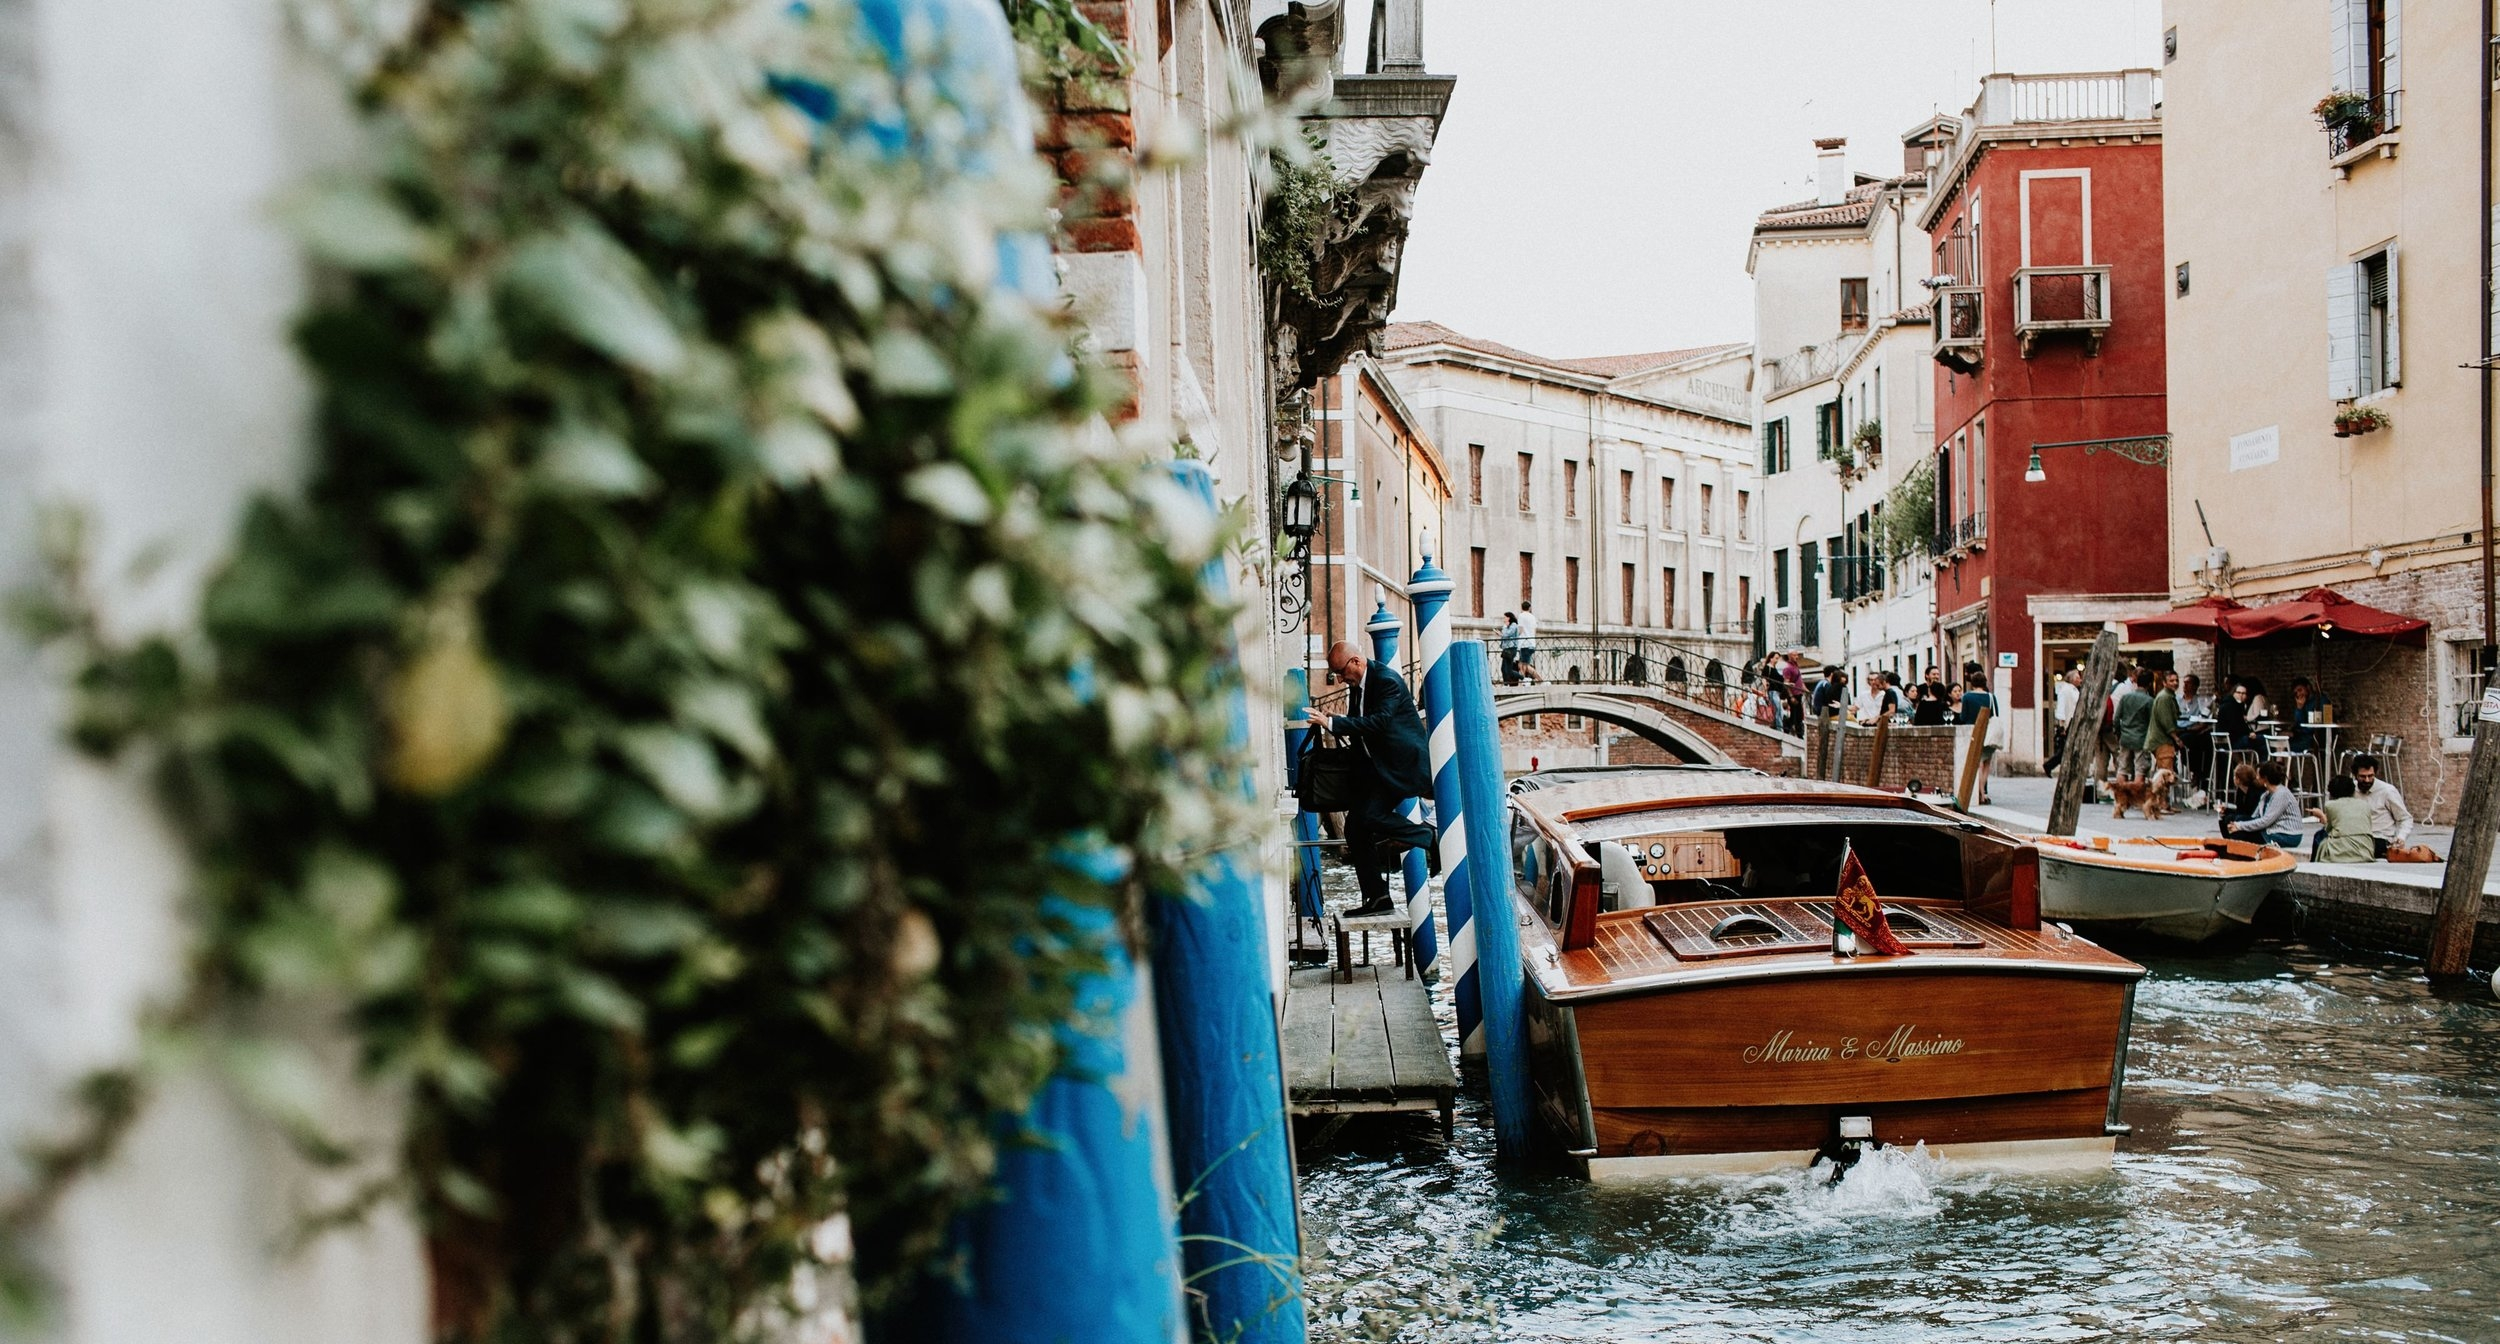 Water Taxis - From organising transfers around Venice to enjoying a beautiful sunset aboard with a glass of Prosecco and delicious Venetian Cicchetti, we can provide you with a stress-free experience.